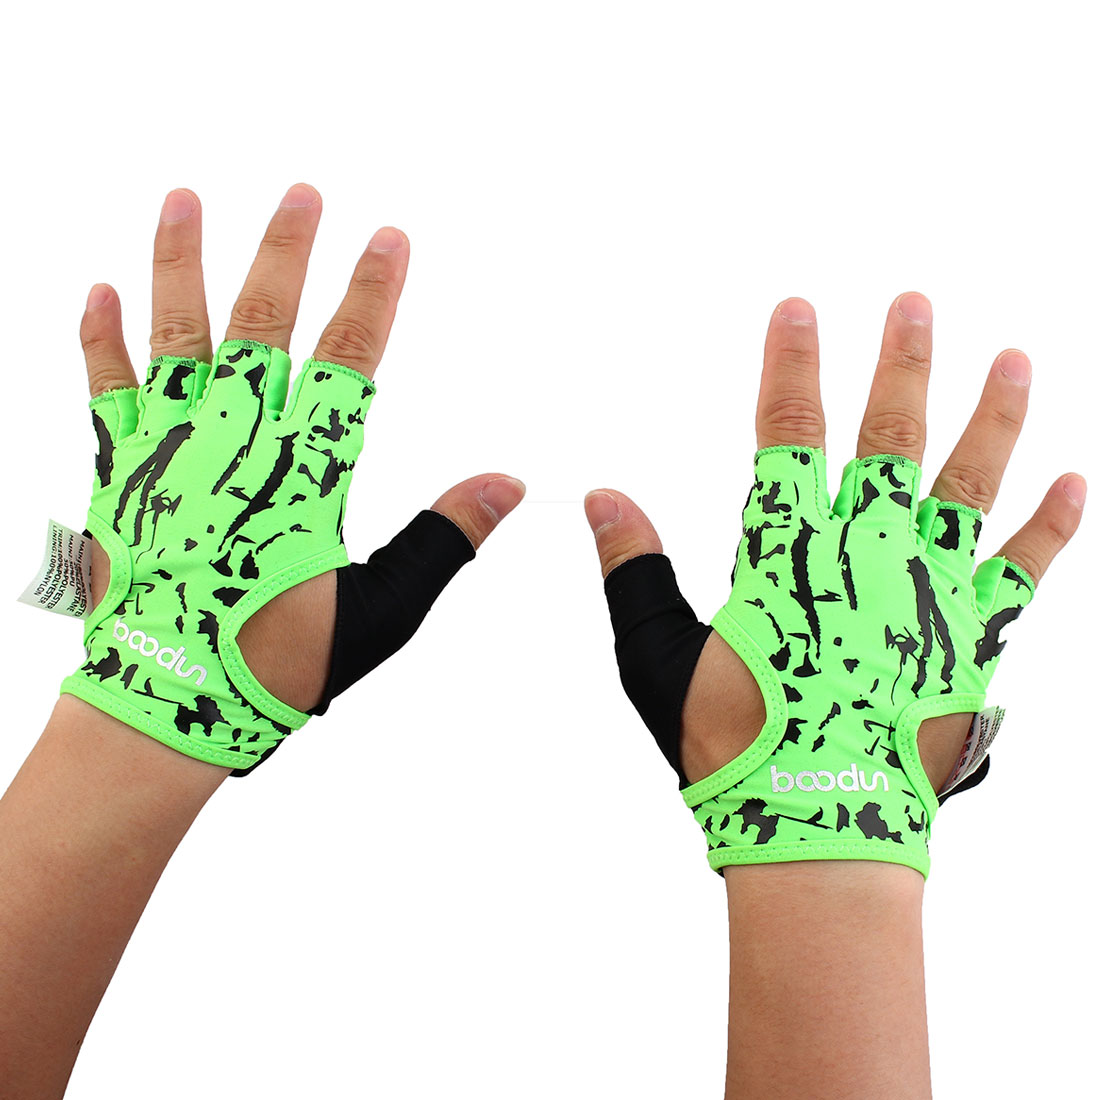 BOODUN Authorized Unisex Sports Training Workout Mittens Breathable Palm Support Fitness Gloves Green M Pair